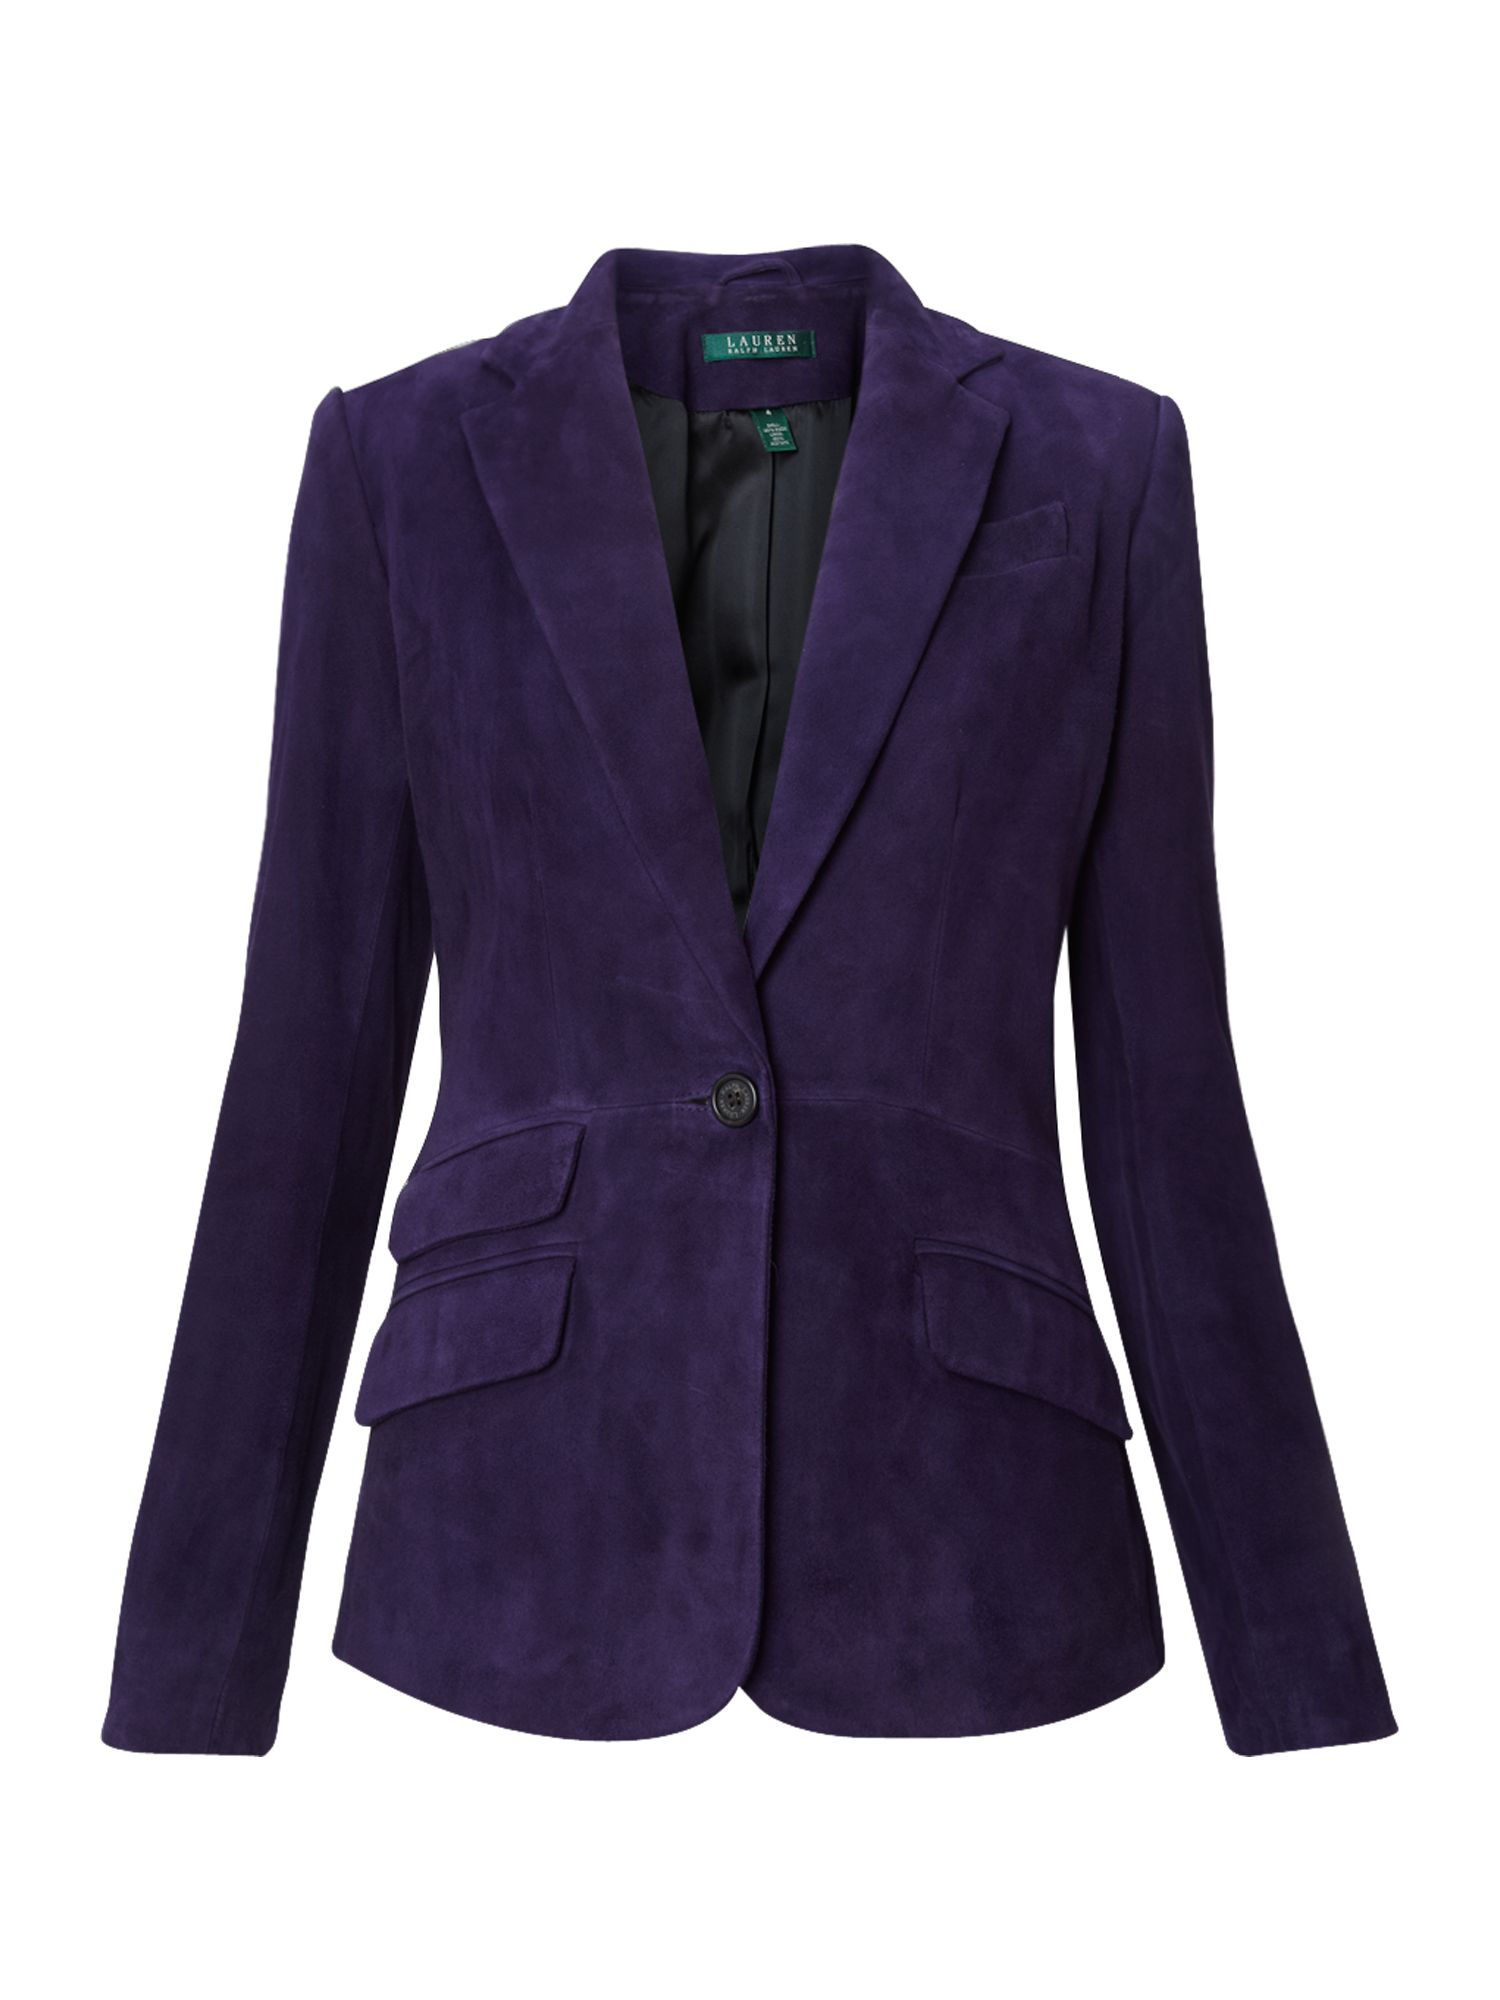 Women's Lauren by Ralph Lauren Valerine suede jacket, Dark Purple